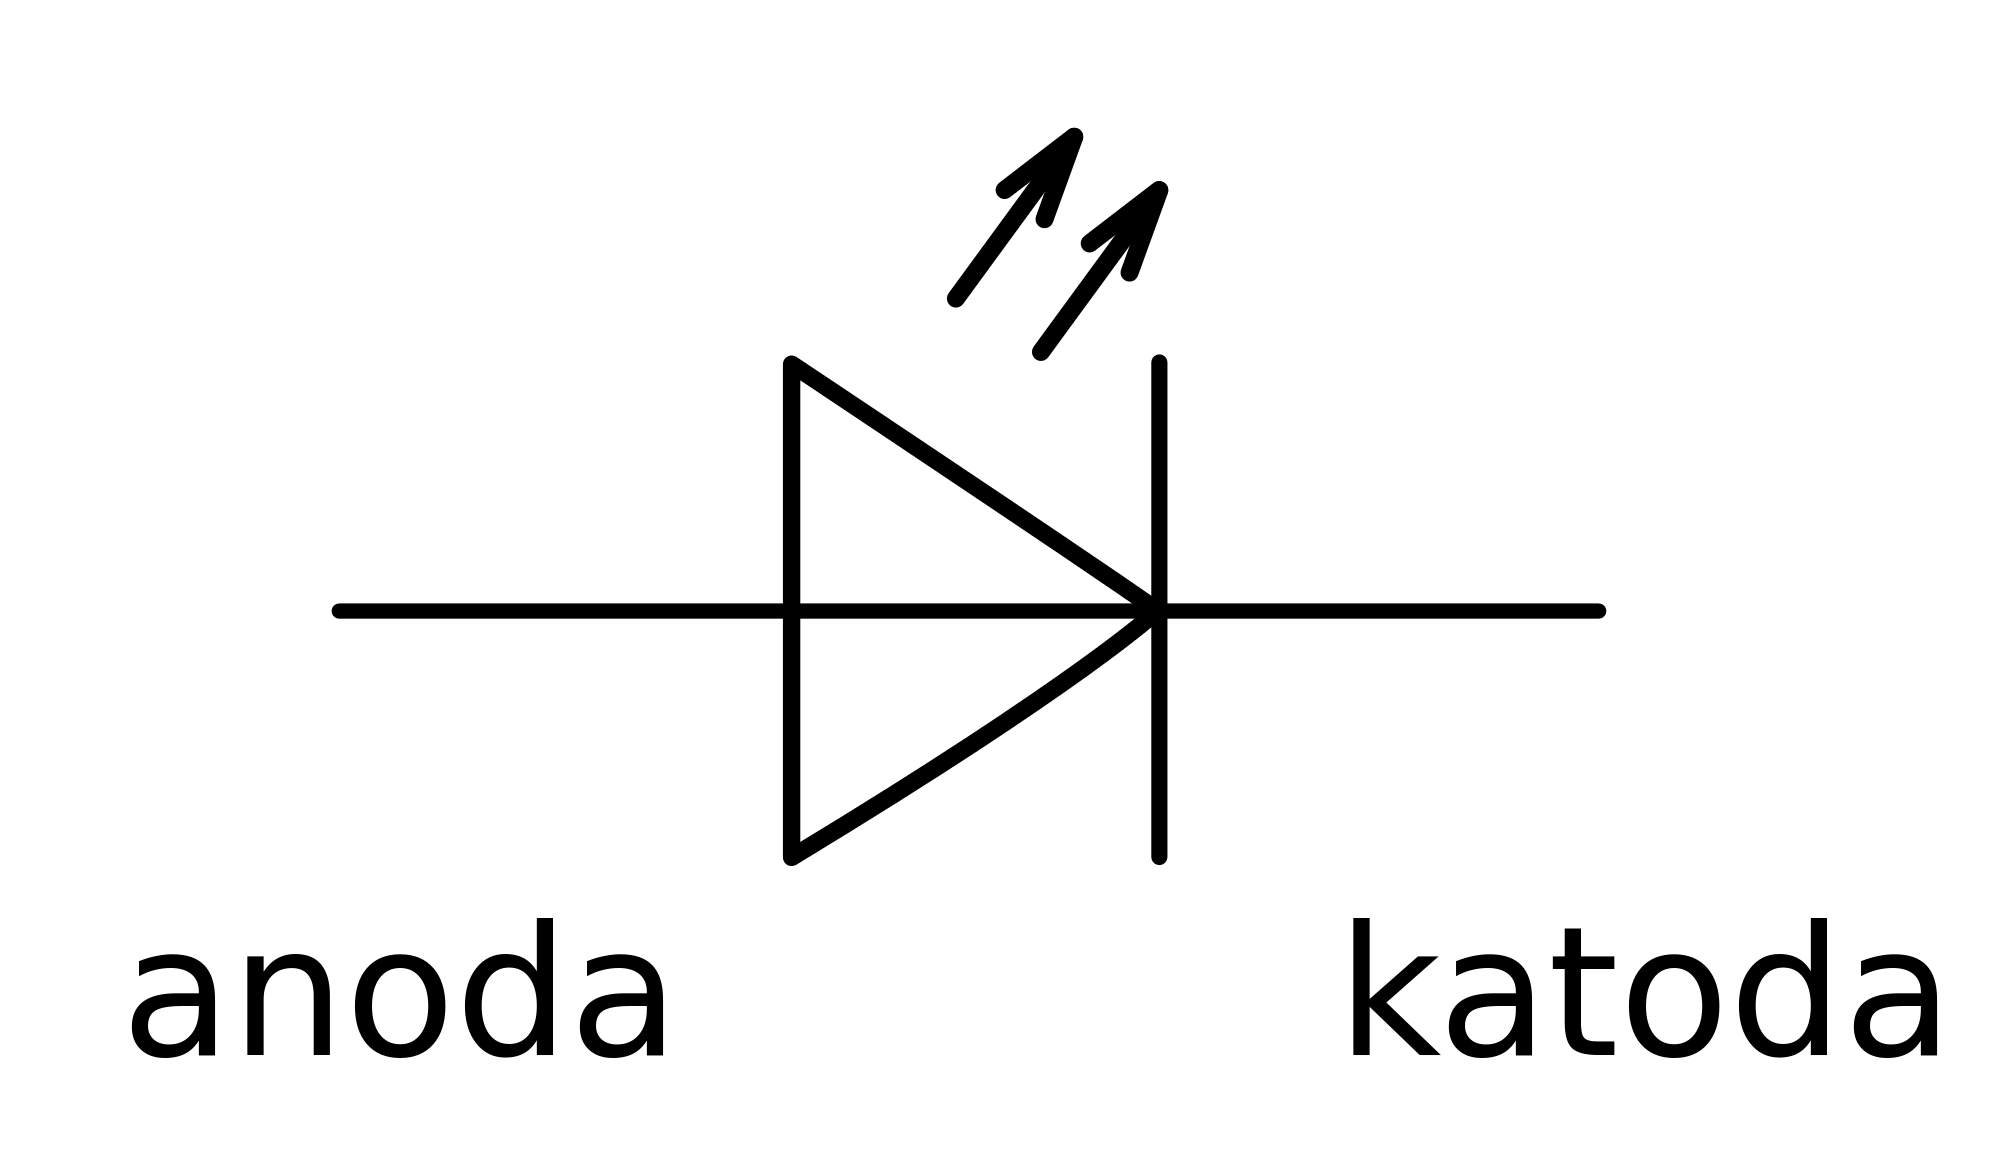 circuit symbol for light emitting diode